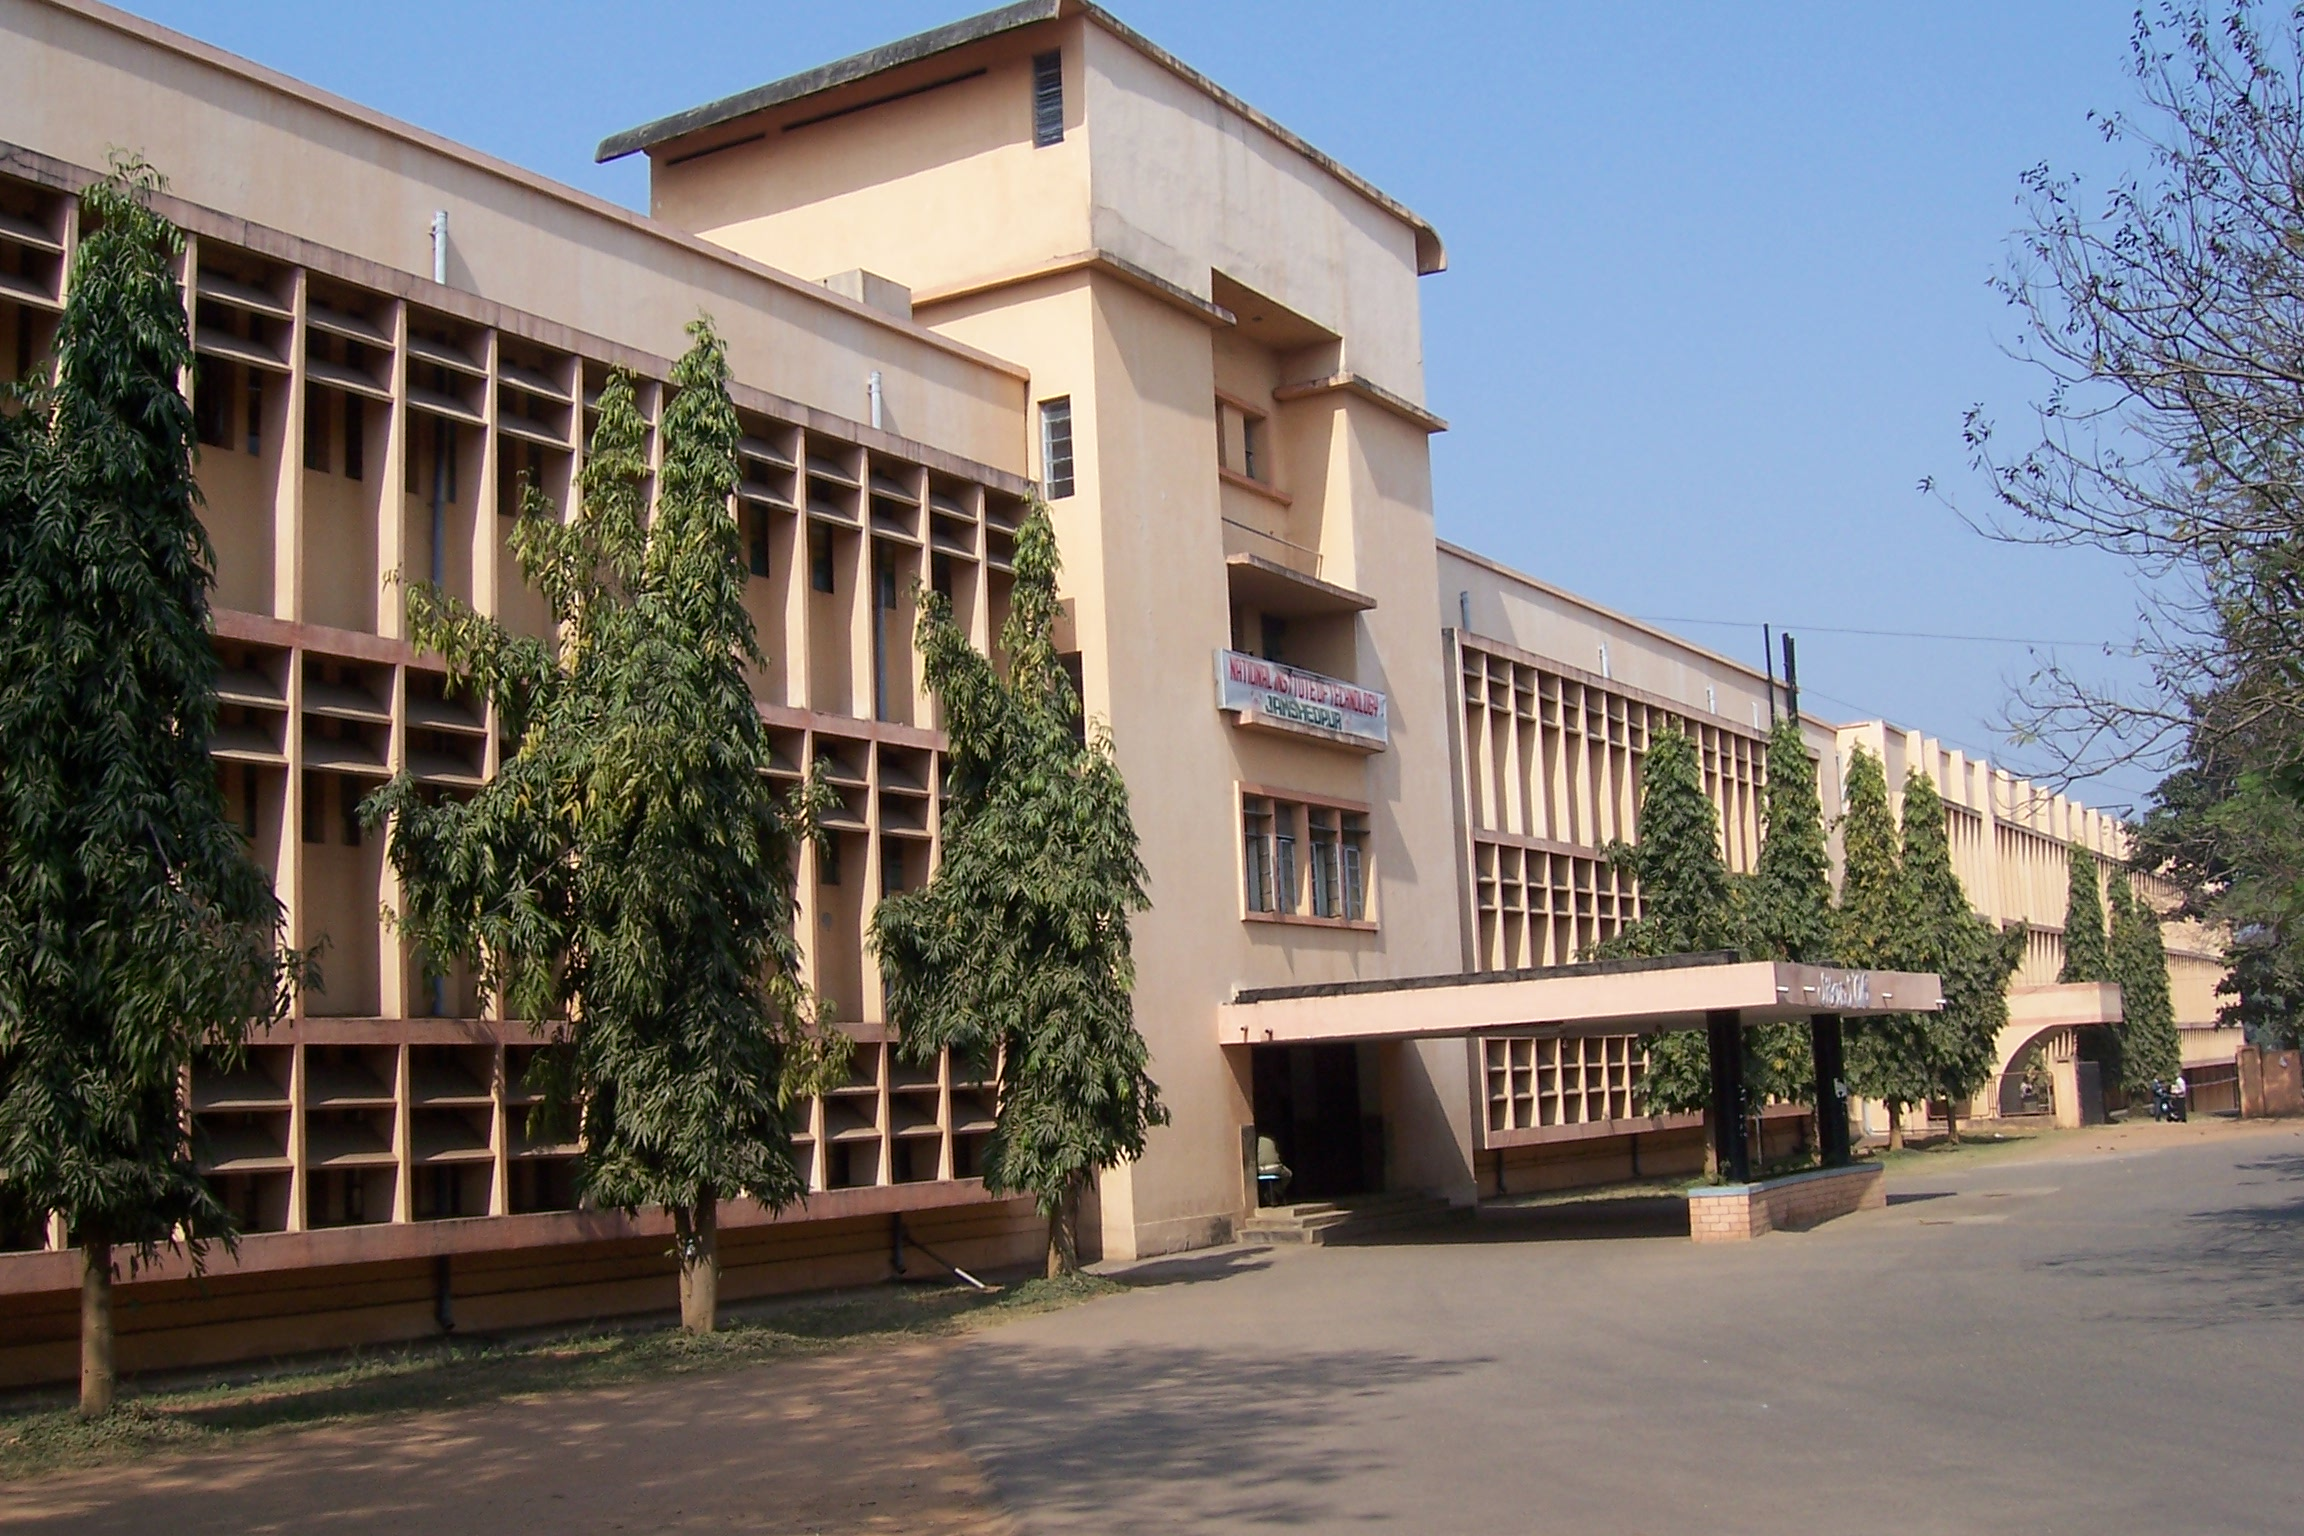 PhD Admission 2014-15, National Institute of Technology, Jamshedpur